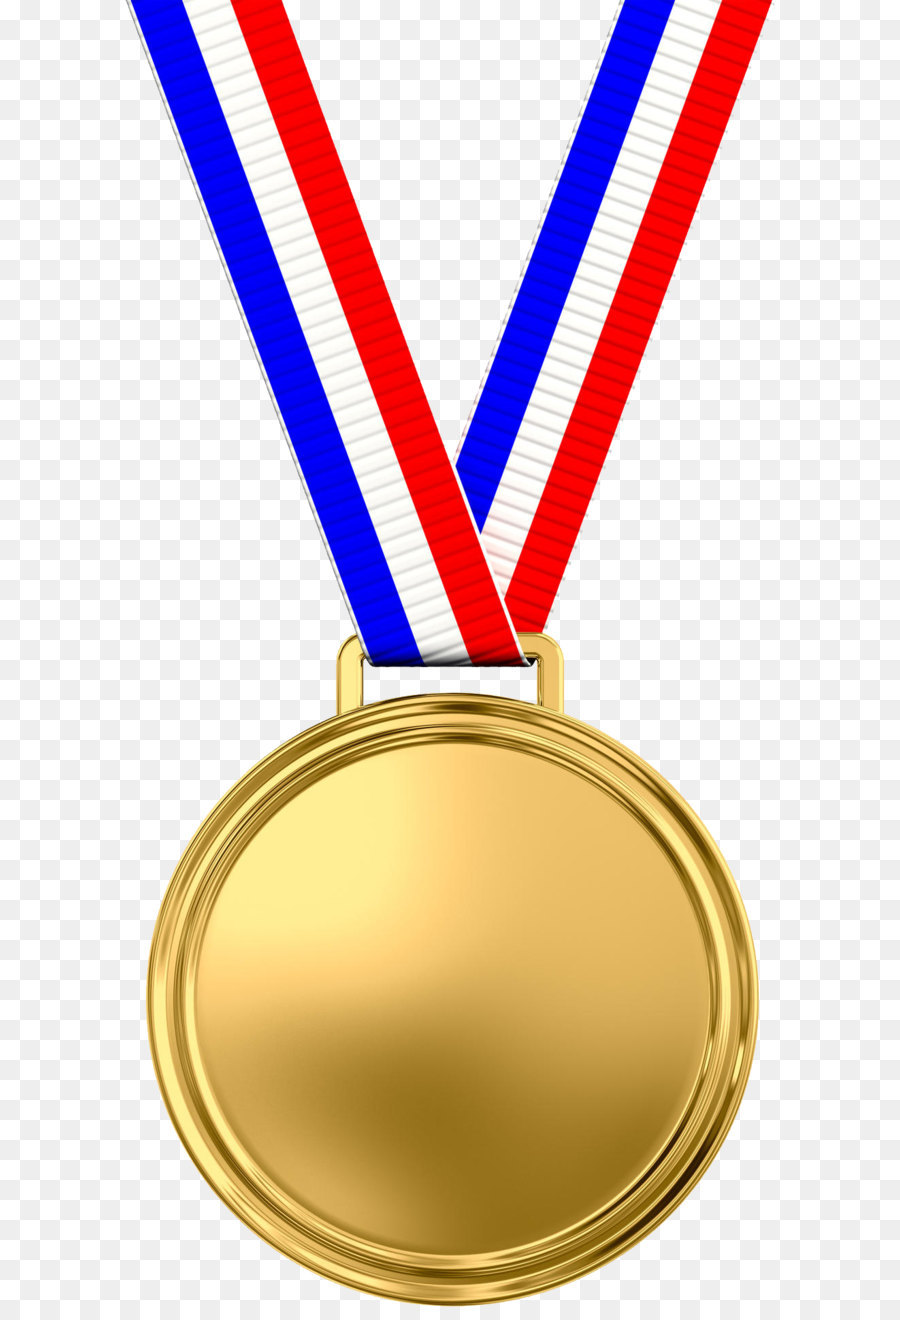 Silver station . 4 clipart medal